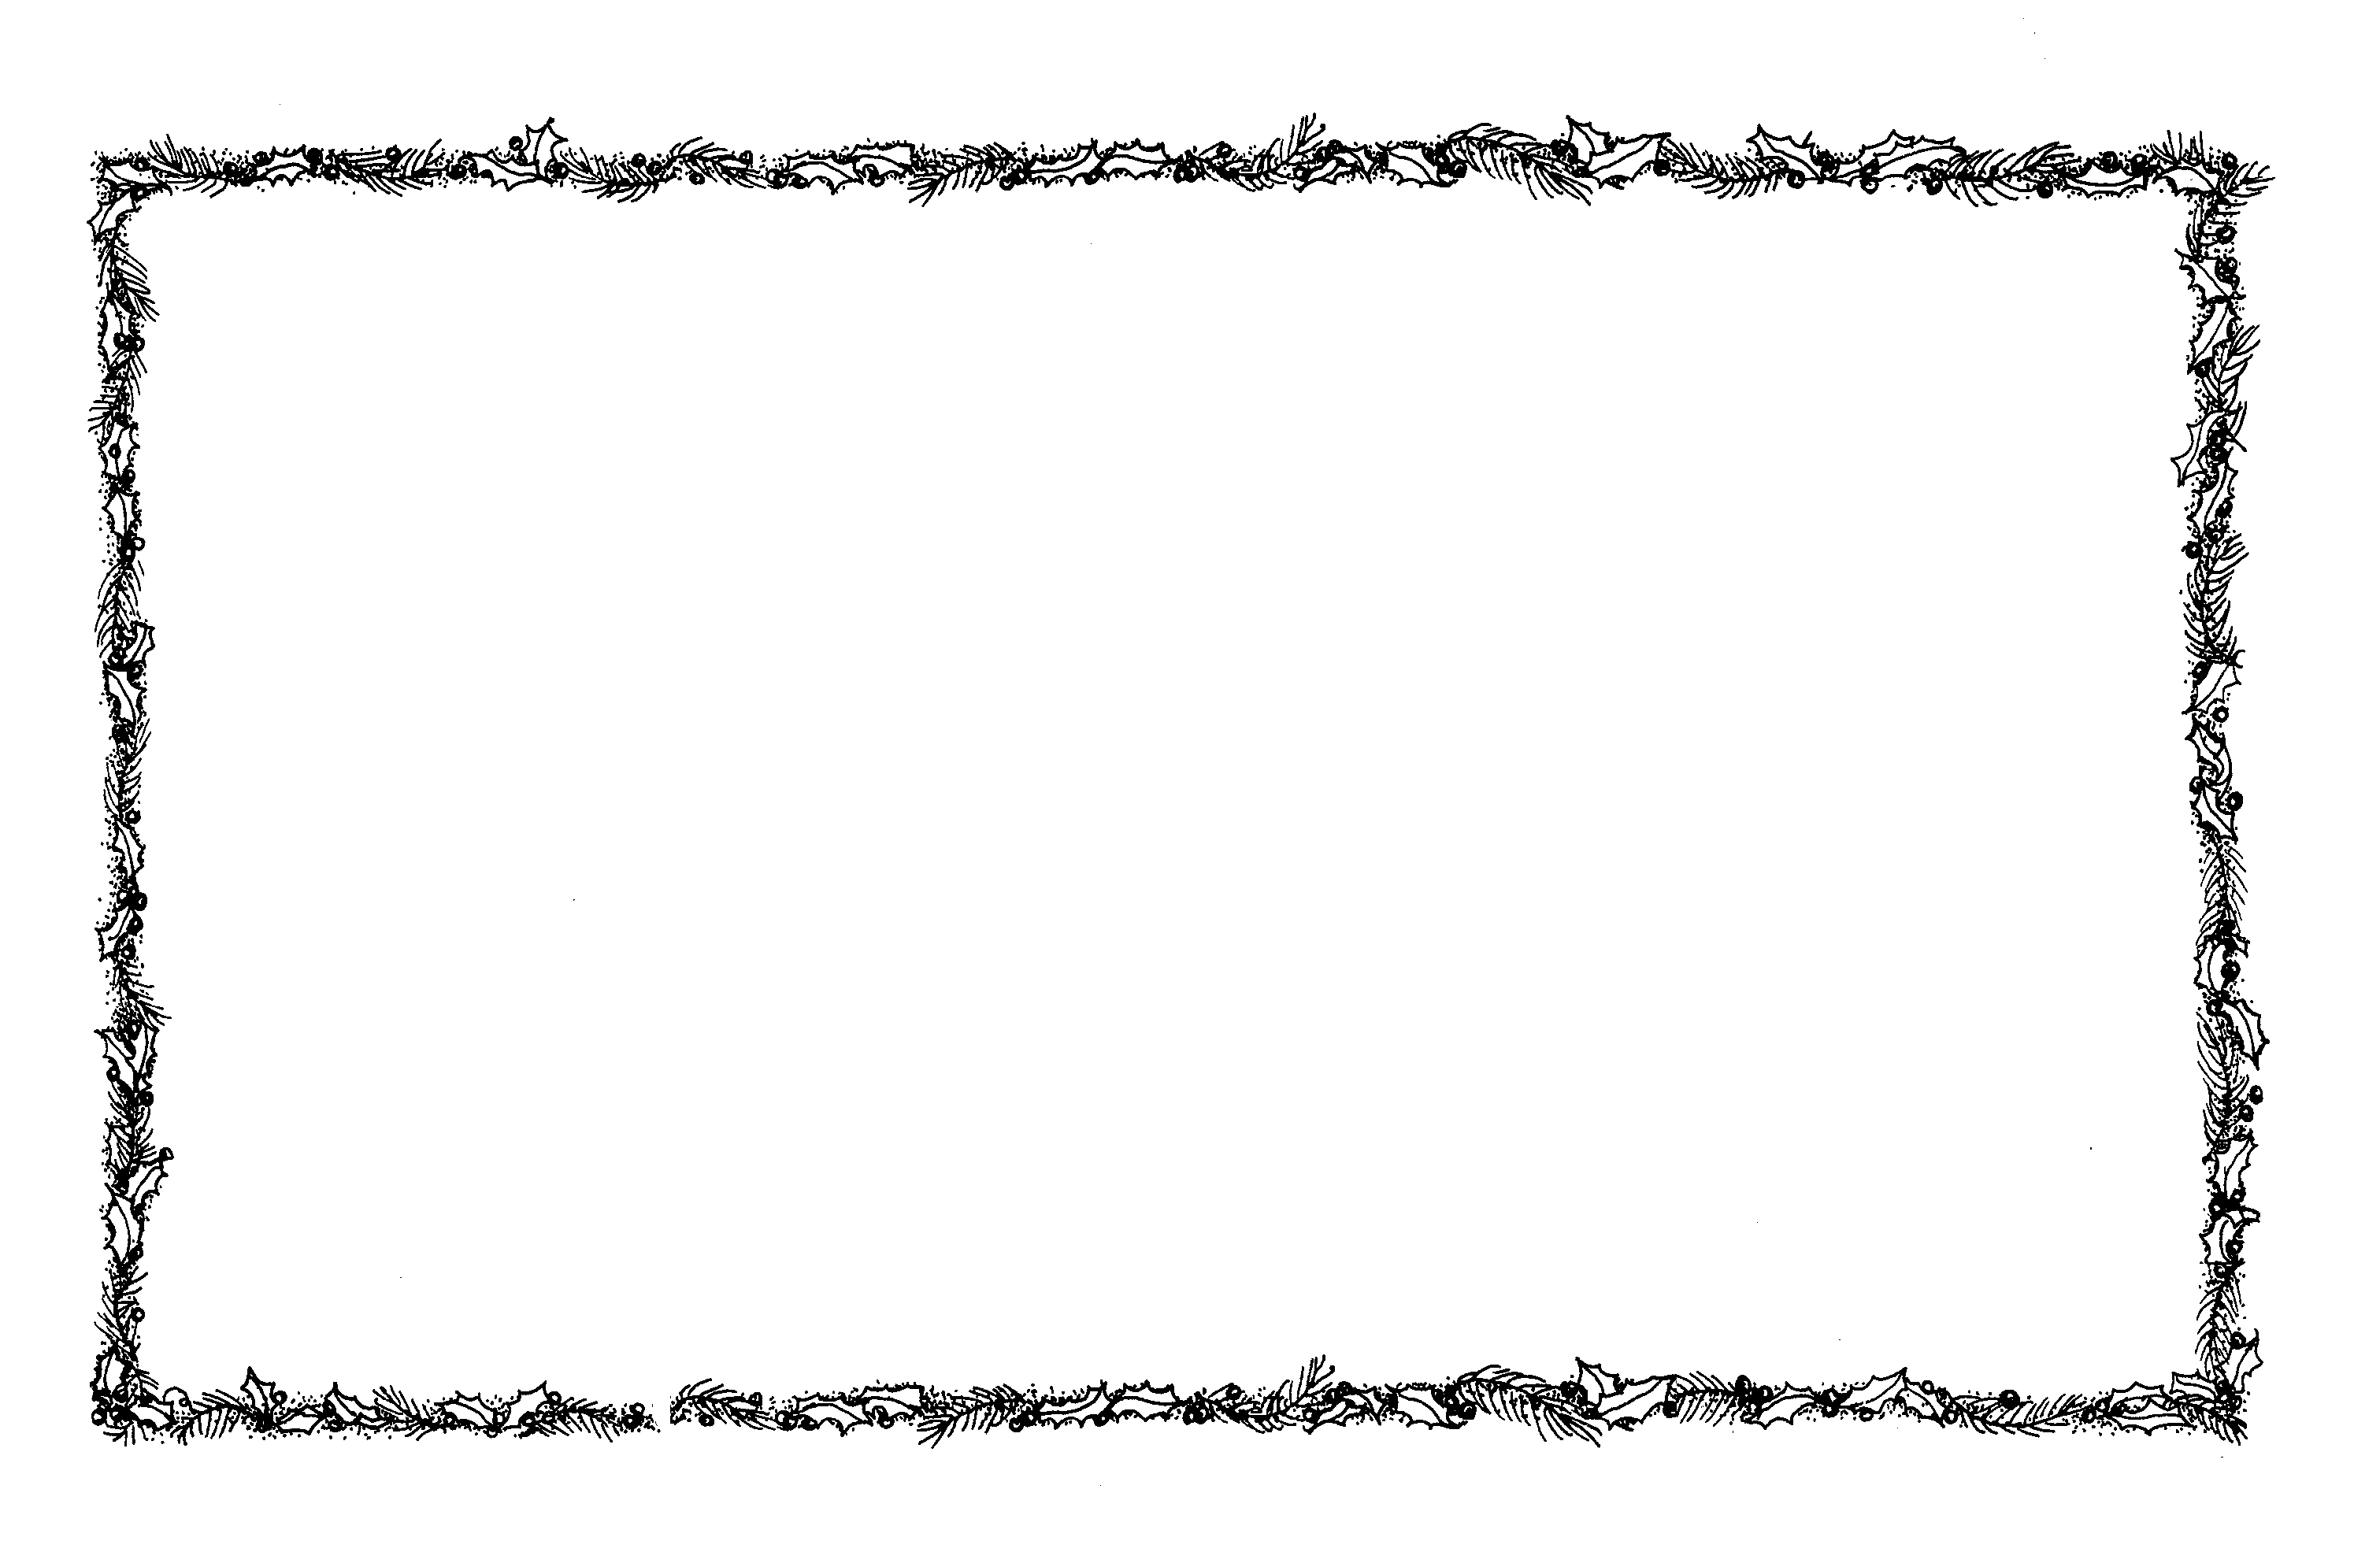 Frame clipart funeral For Download Stuff Tree Decorative